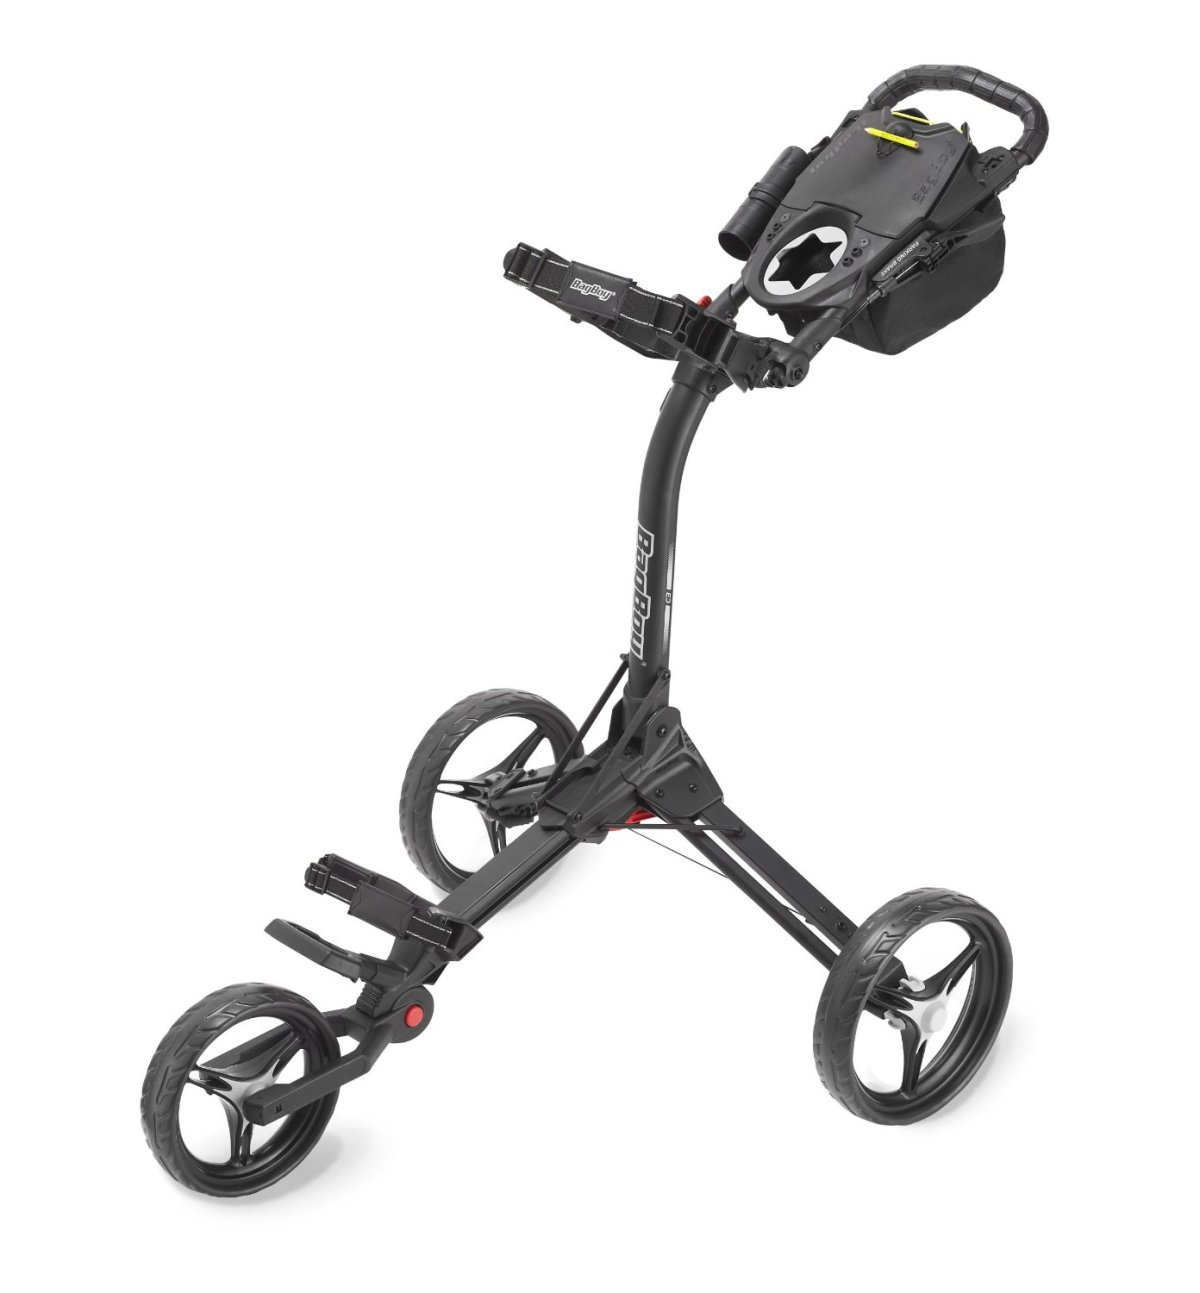 What's the Best Golf Push Cart?